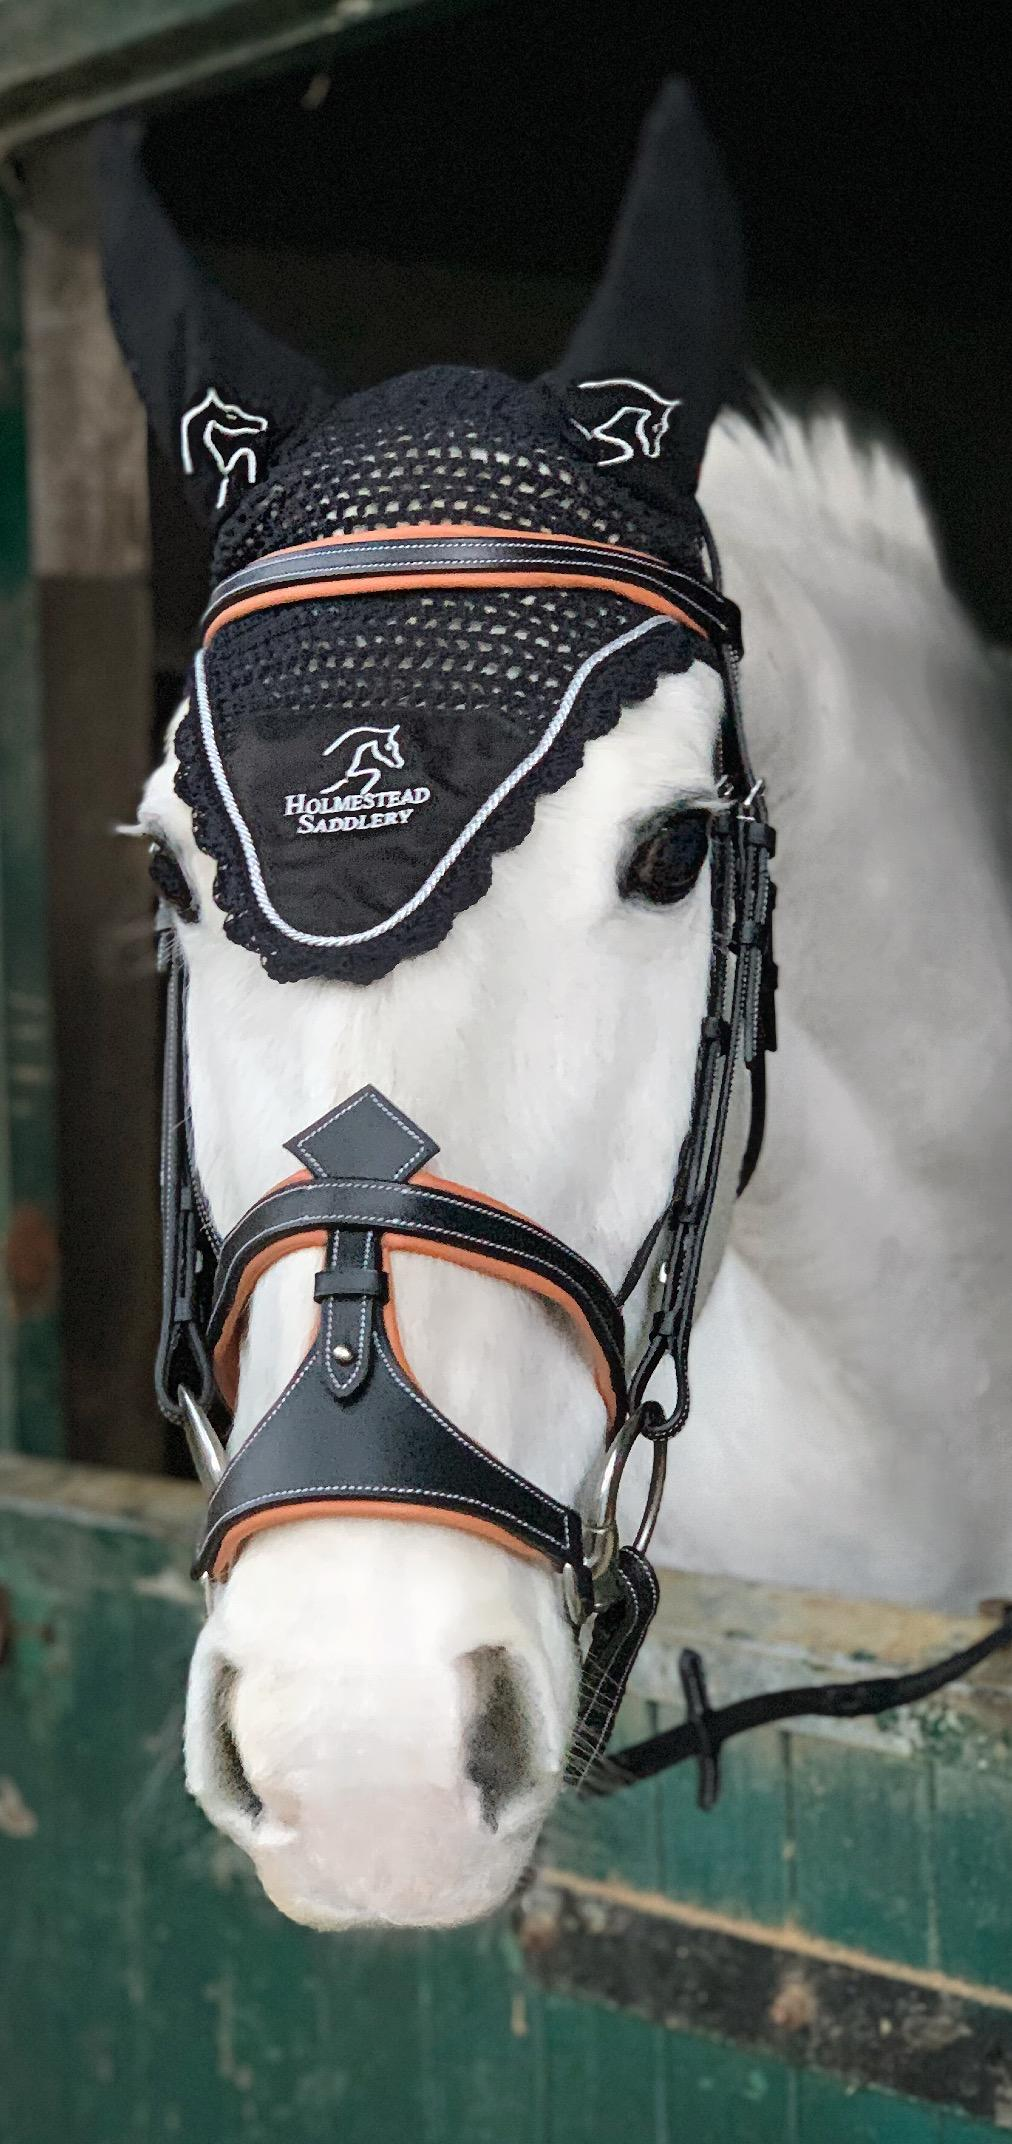 sale! 50% off fiorianna jump bridle with reins $ 153 51 $ 76 76